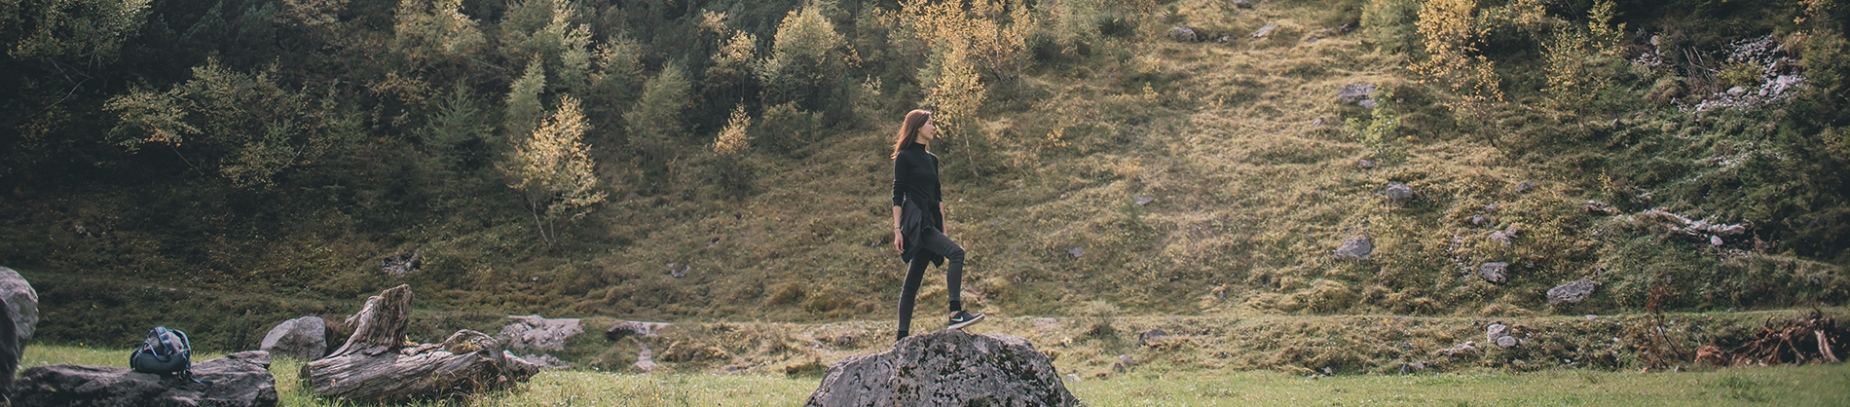 A women stood on top of a large rock in a field